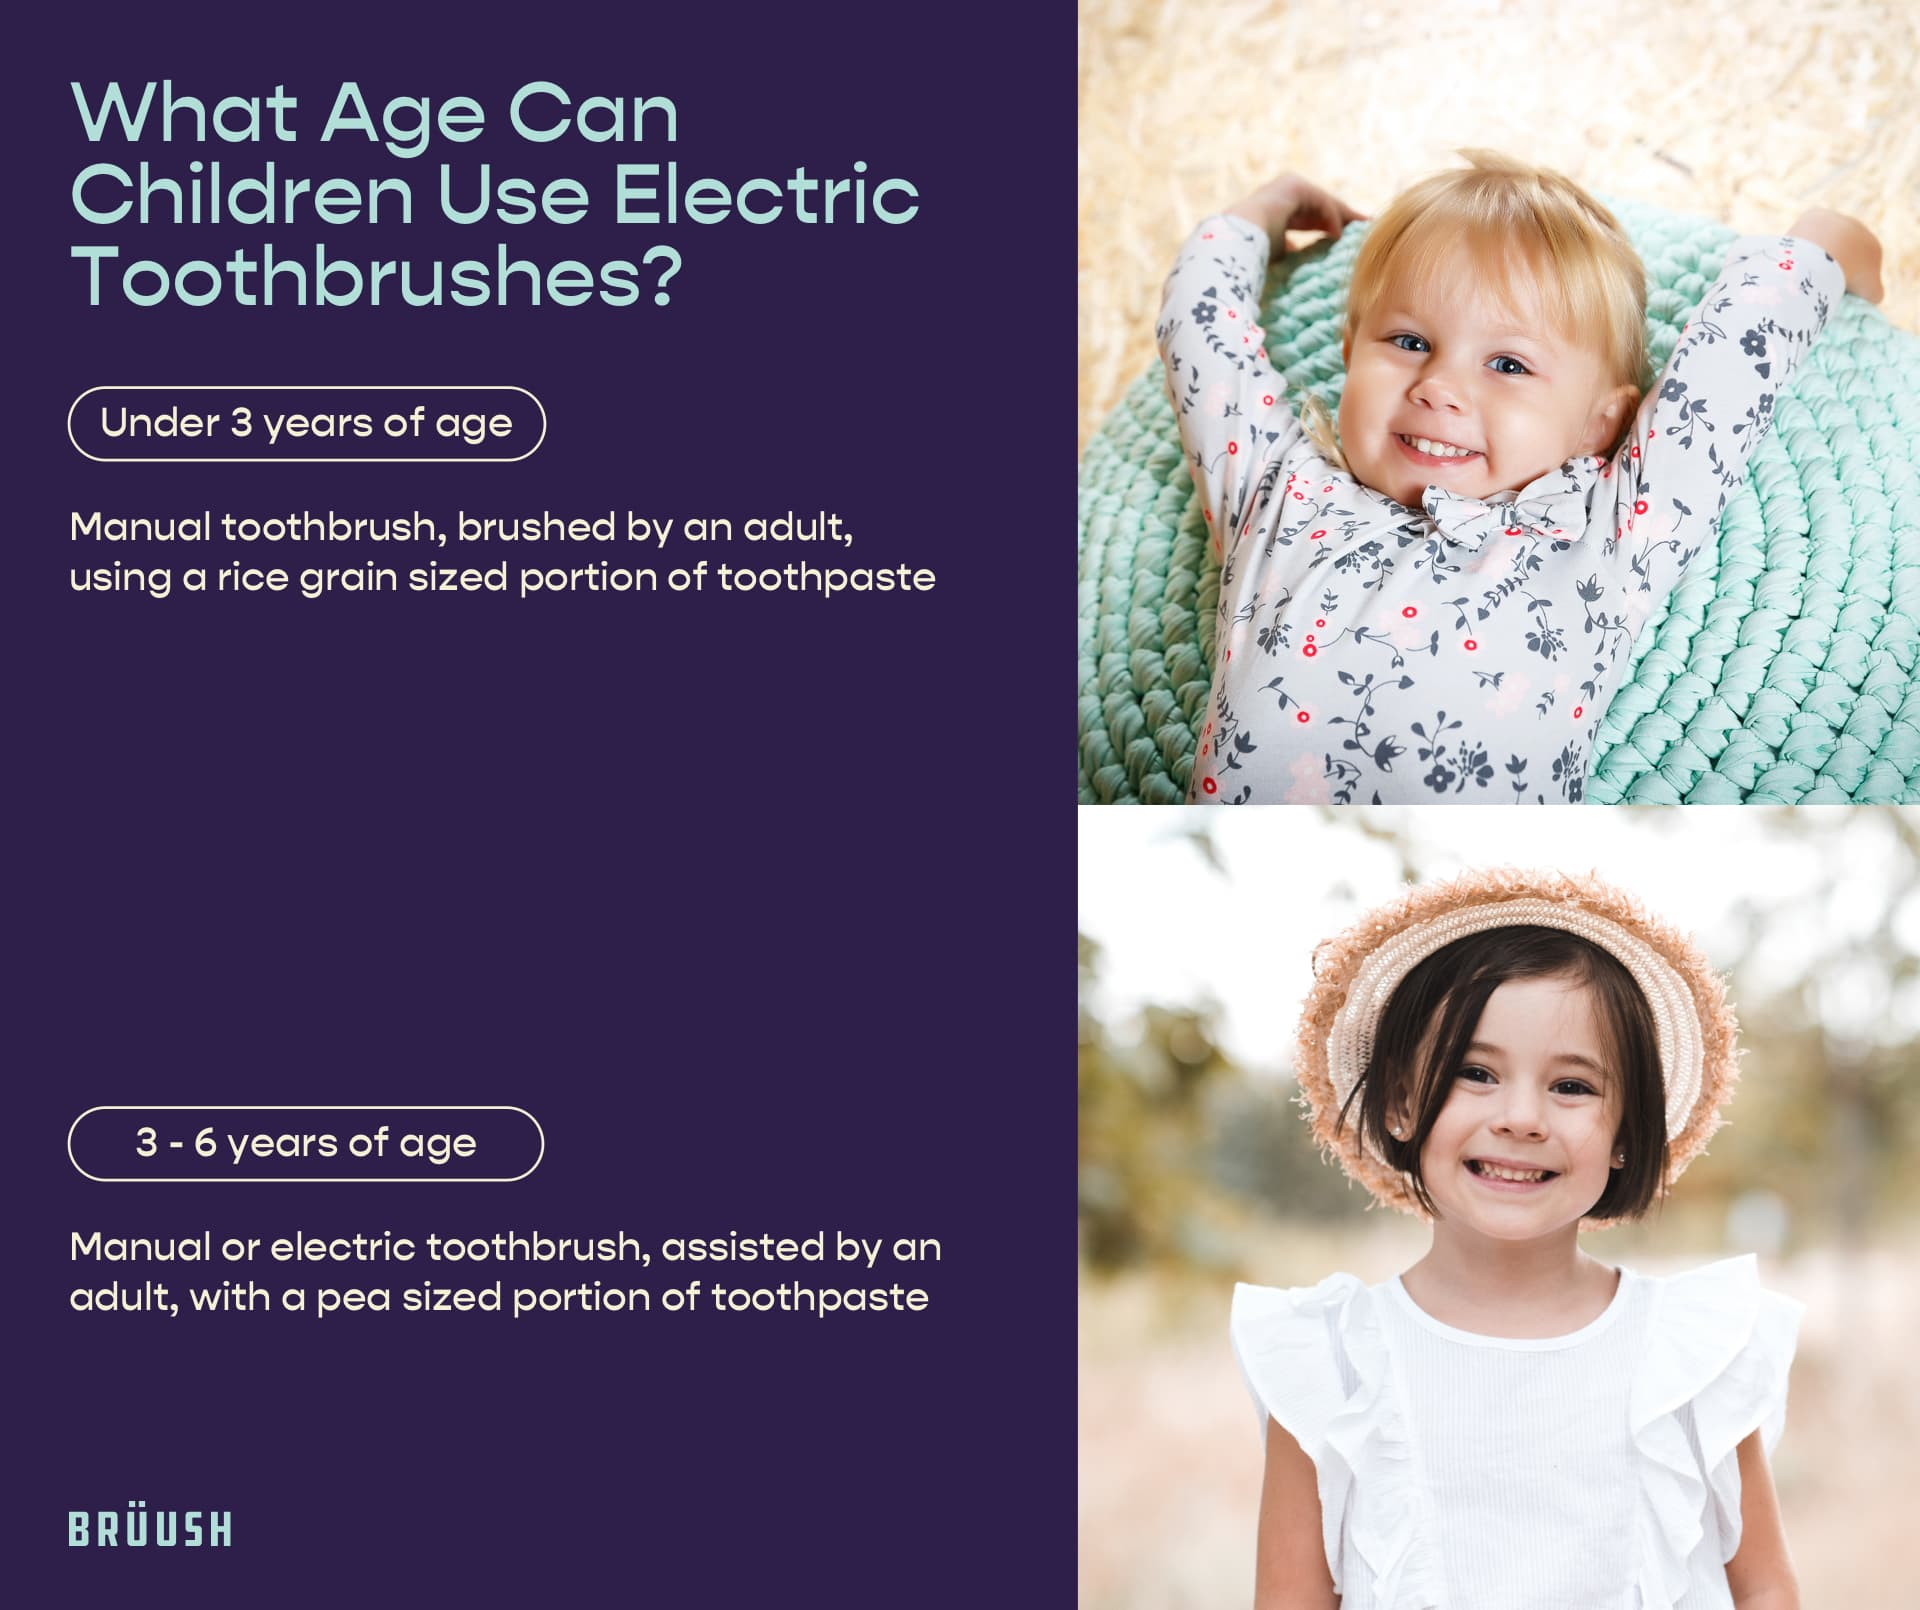 what age can children use electric toothbrushes?